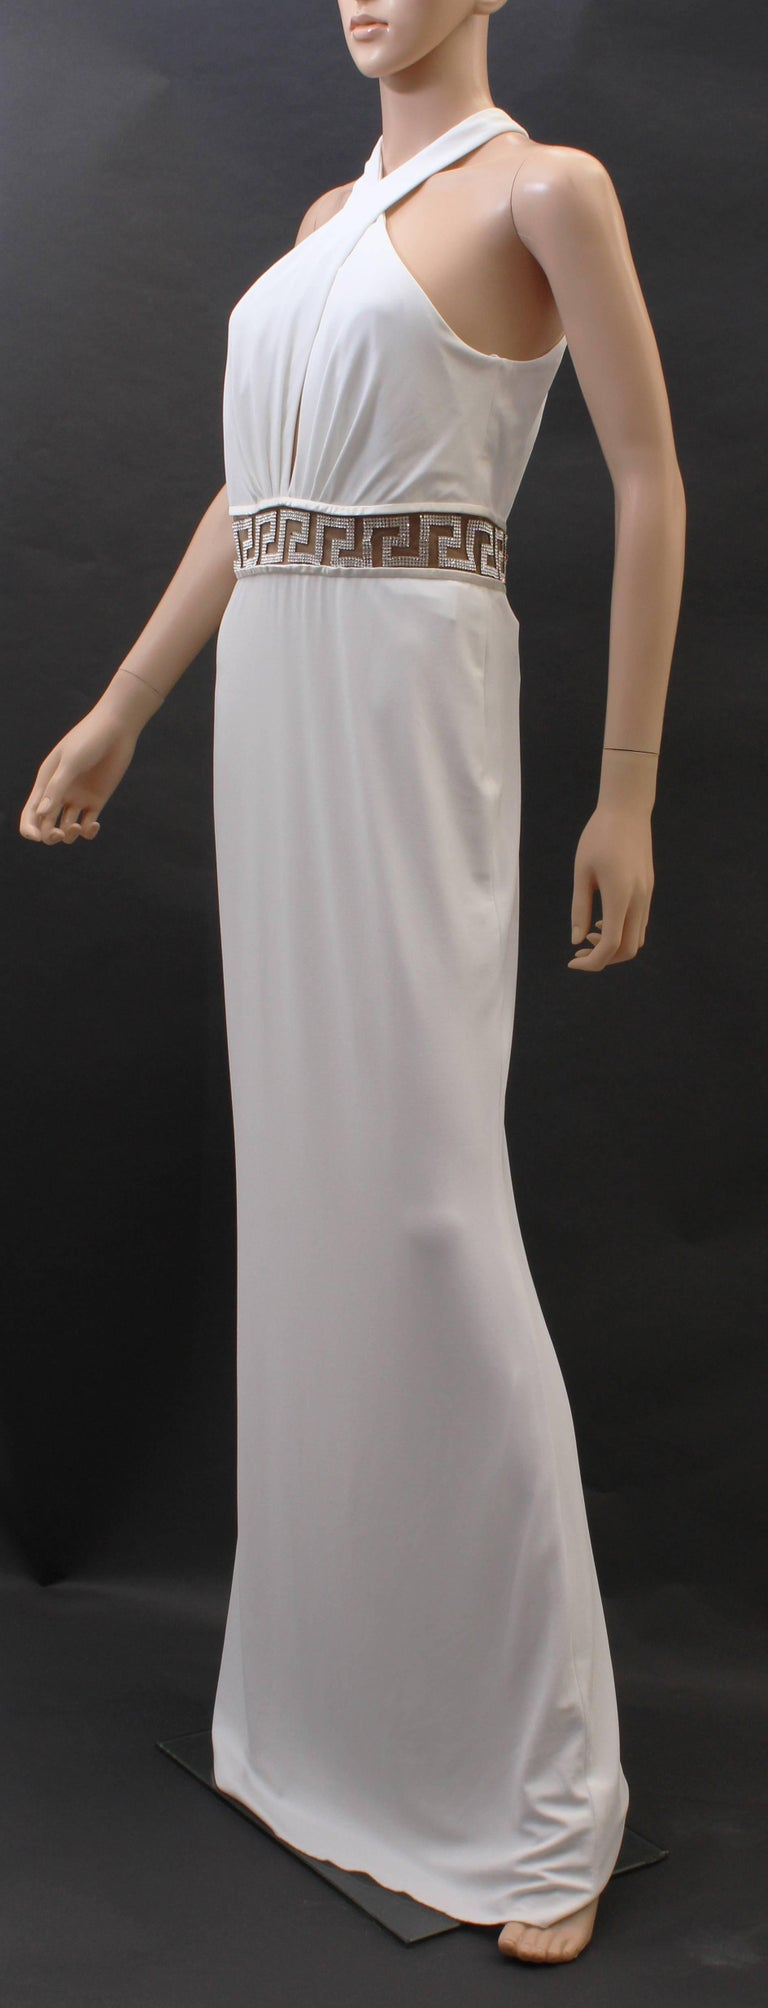 Versace Crystal Embellished white gown In New Never_worn Condition For Sale In Montgomery, TX